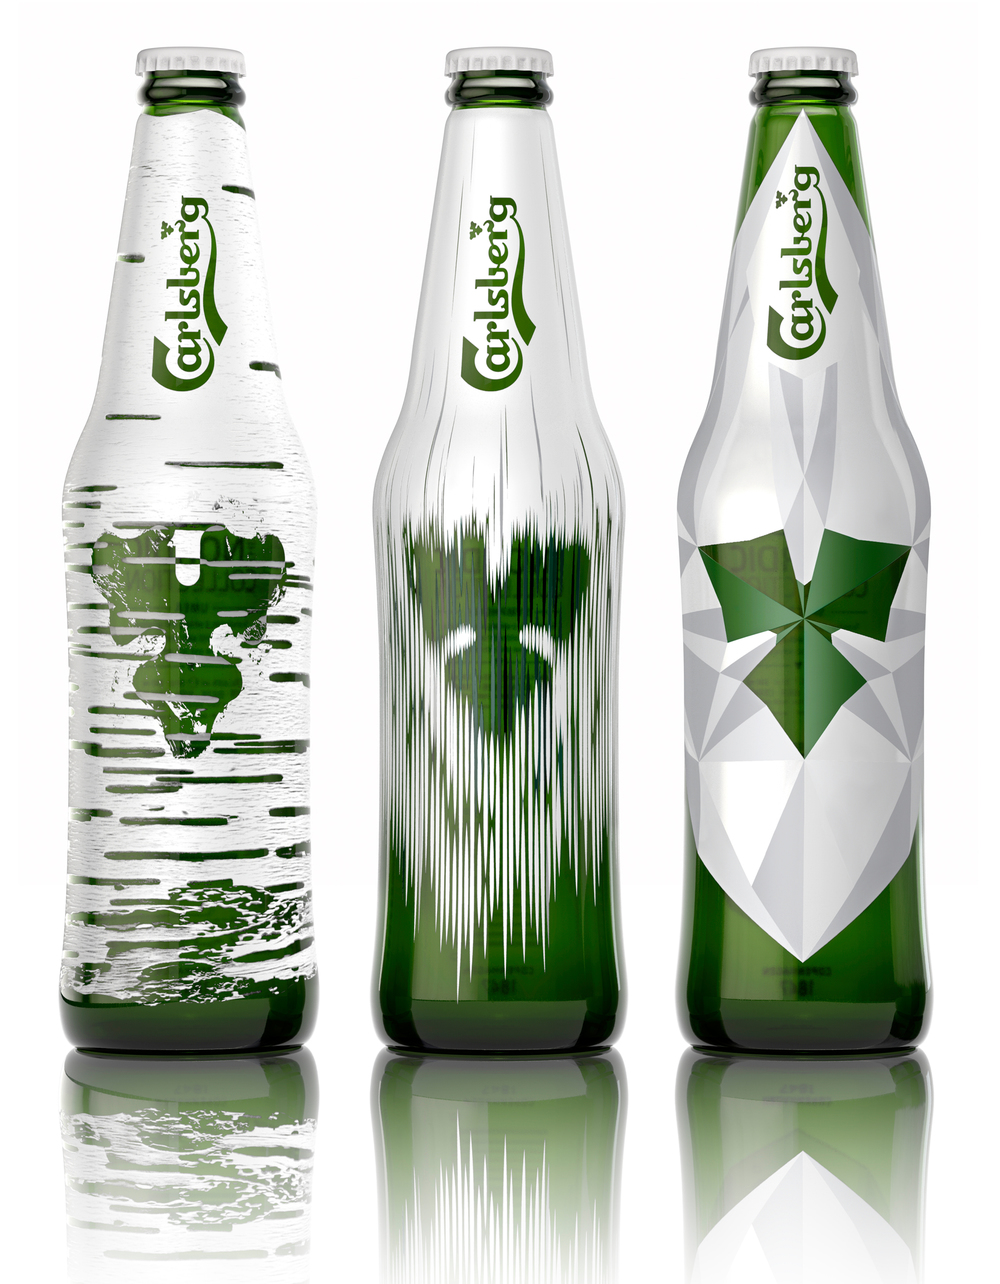 Carlsberg limited edition bottles